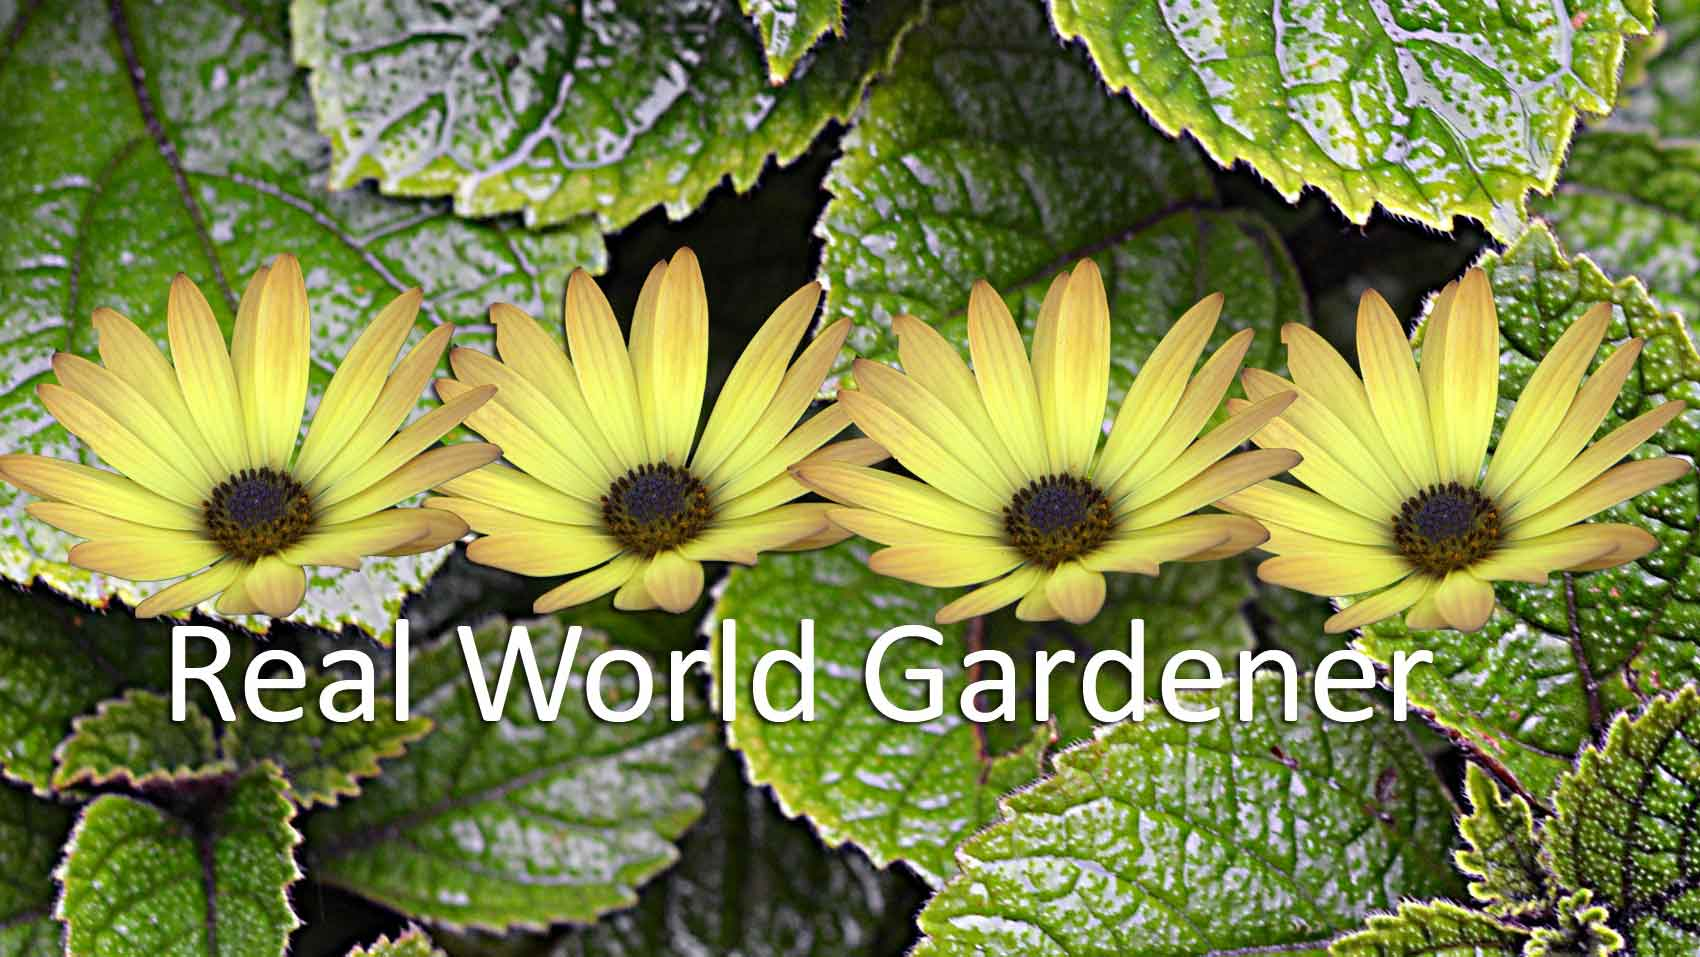 Real World Gardener Summer Garden in The Good Earth